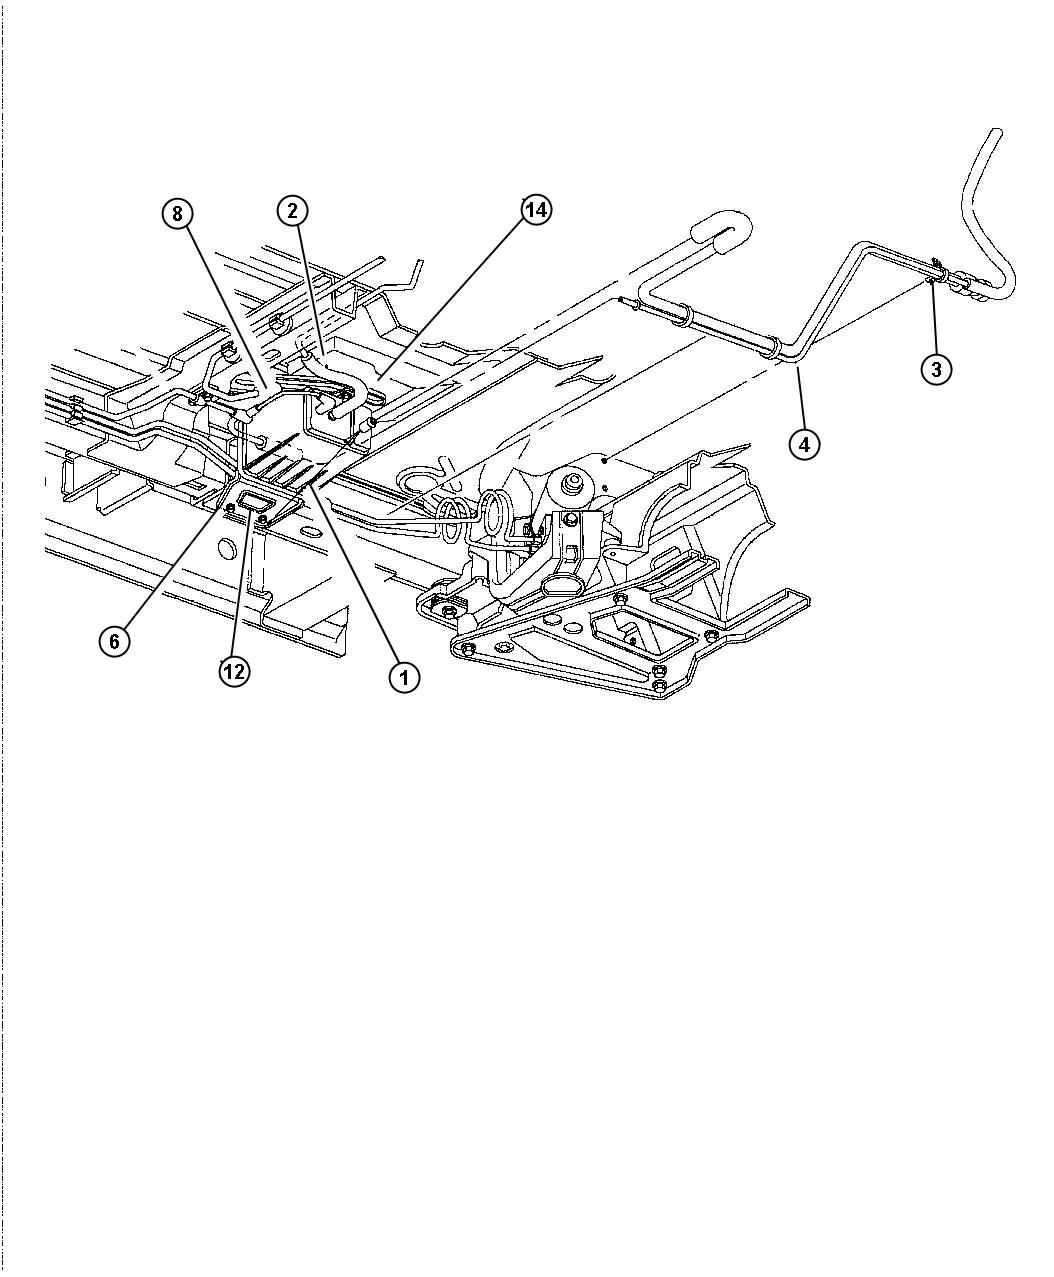 Service manual [Replace Evap Canister On A 1992 Plymouth